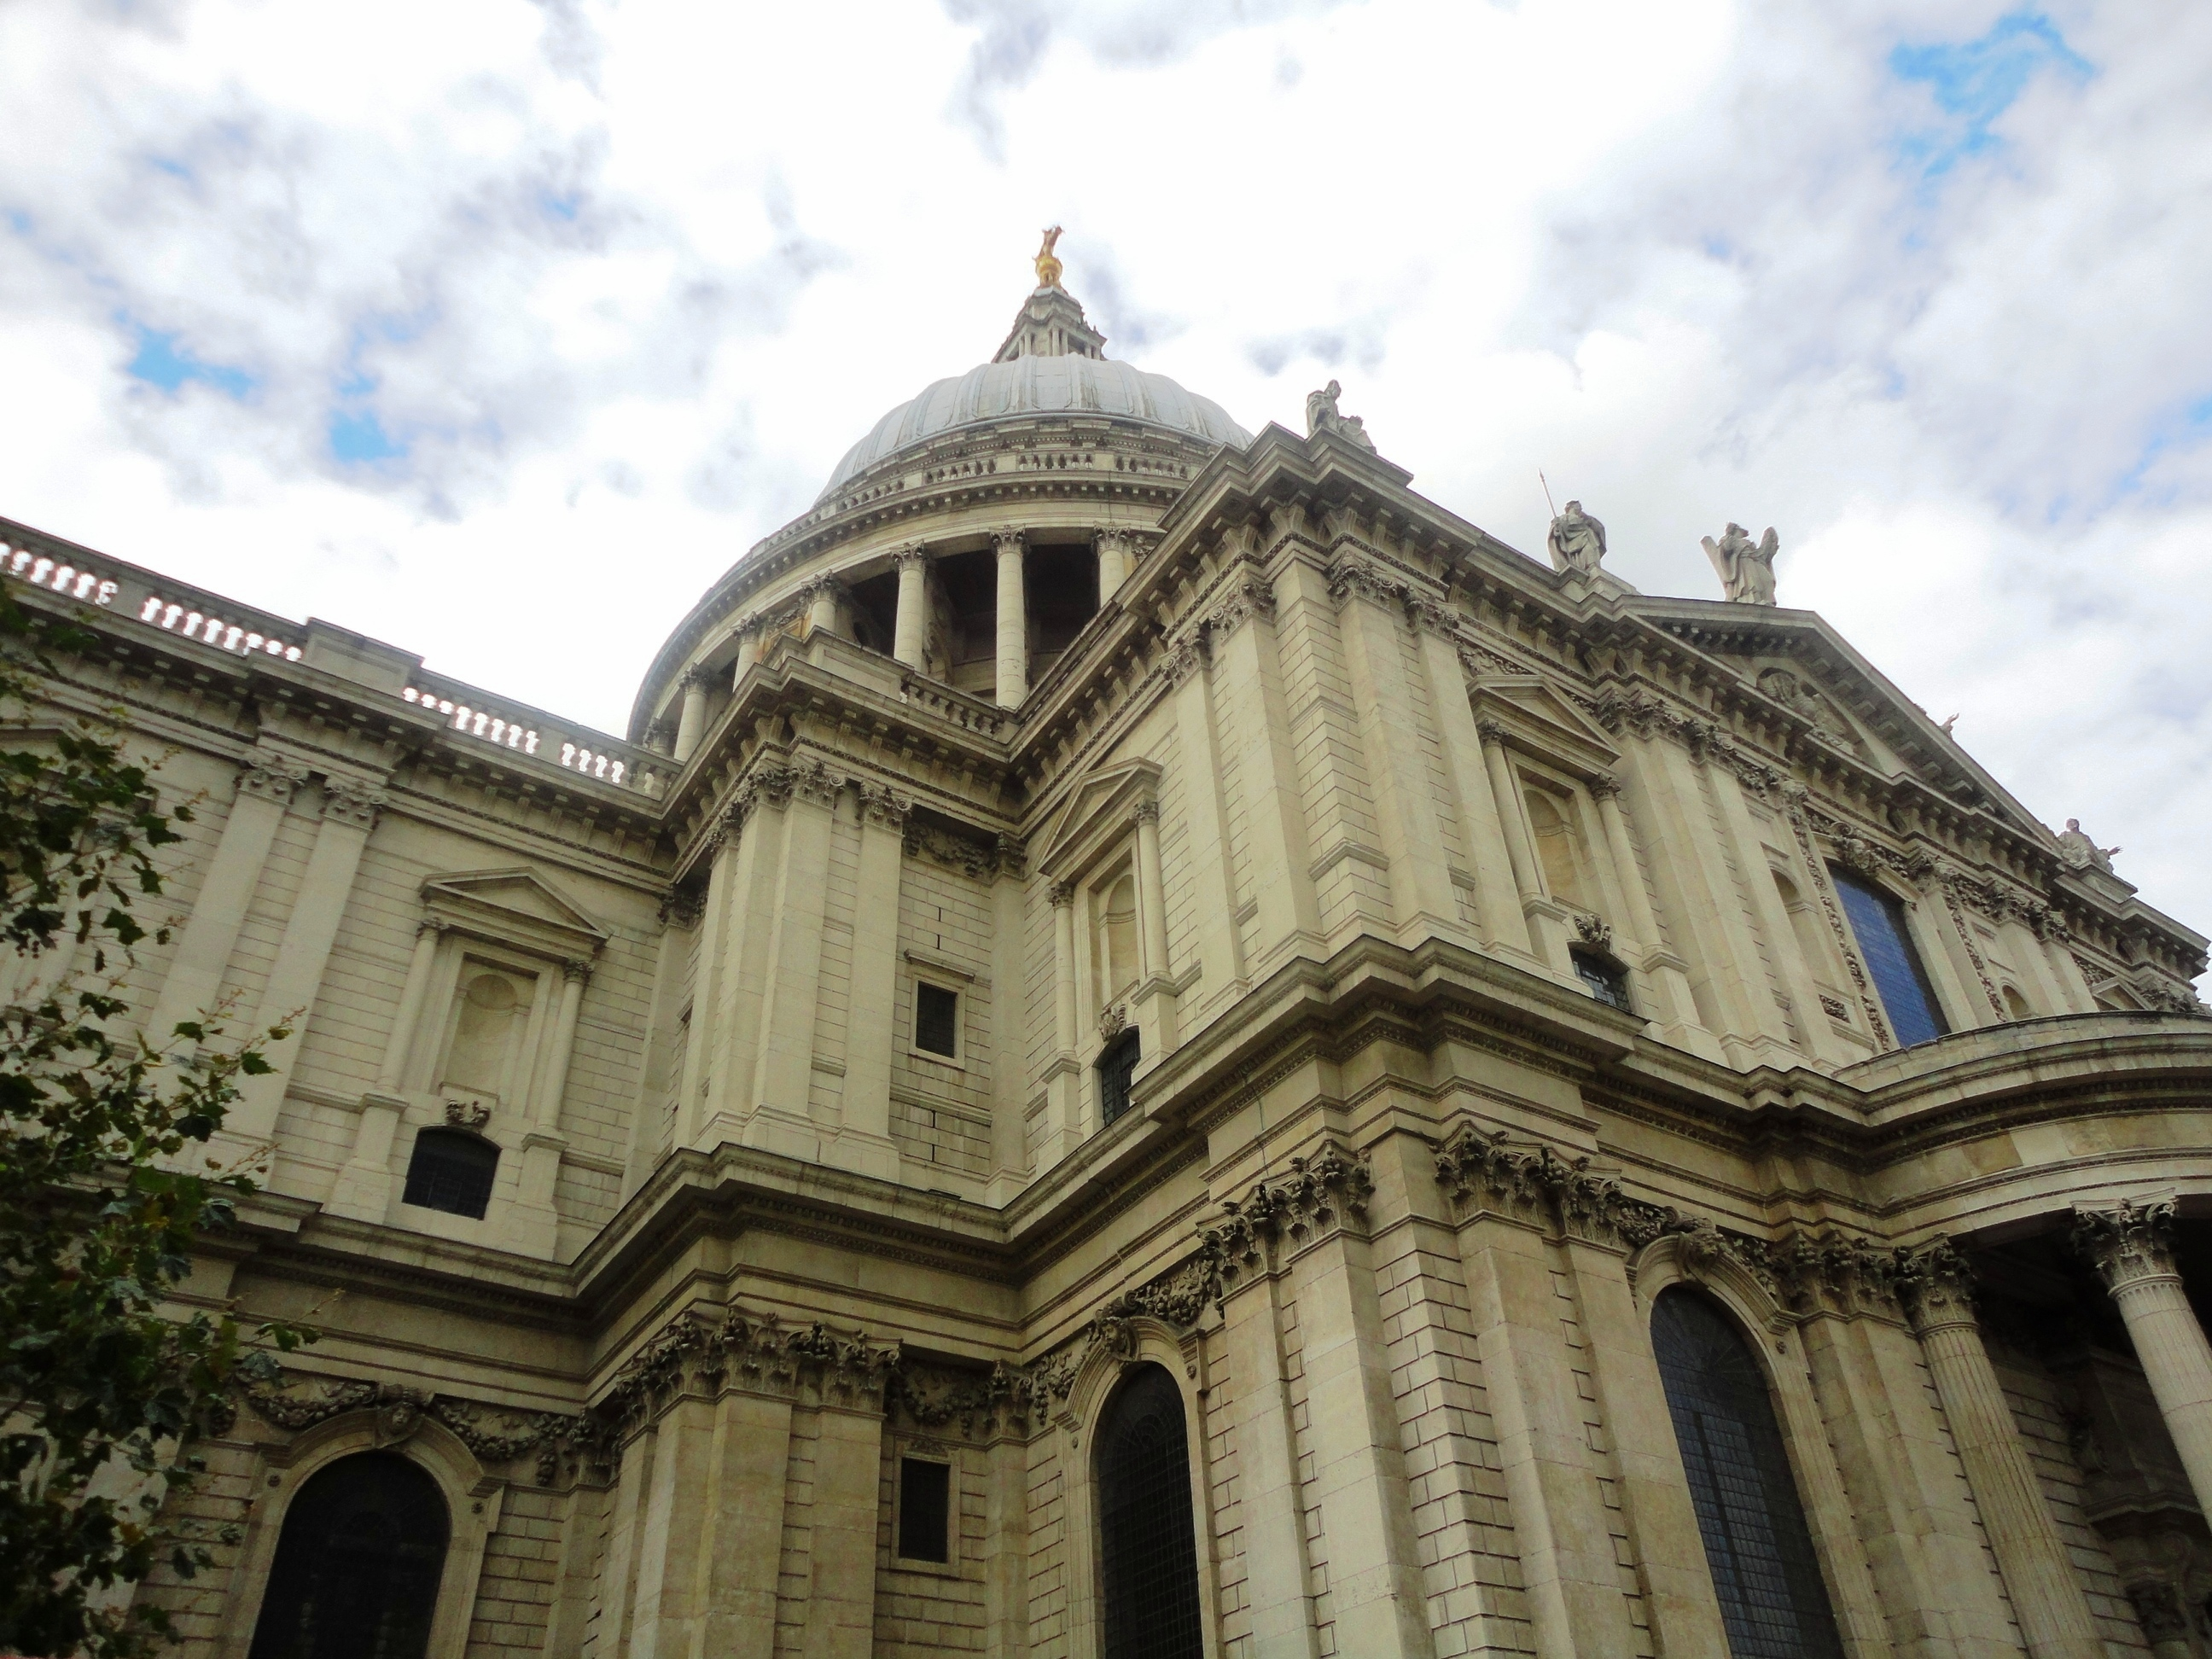 Guest Long Read: Cathedrals of London – Exploring St Paul's and Westminster Abbey – Which is Your Favorite?